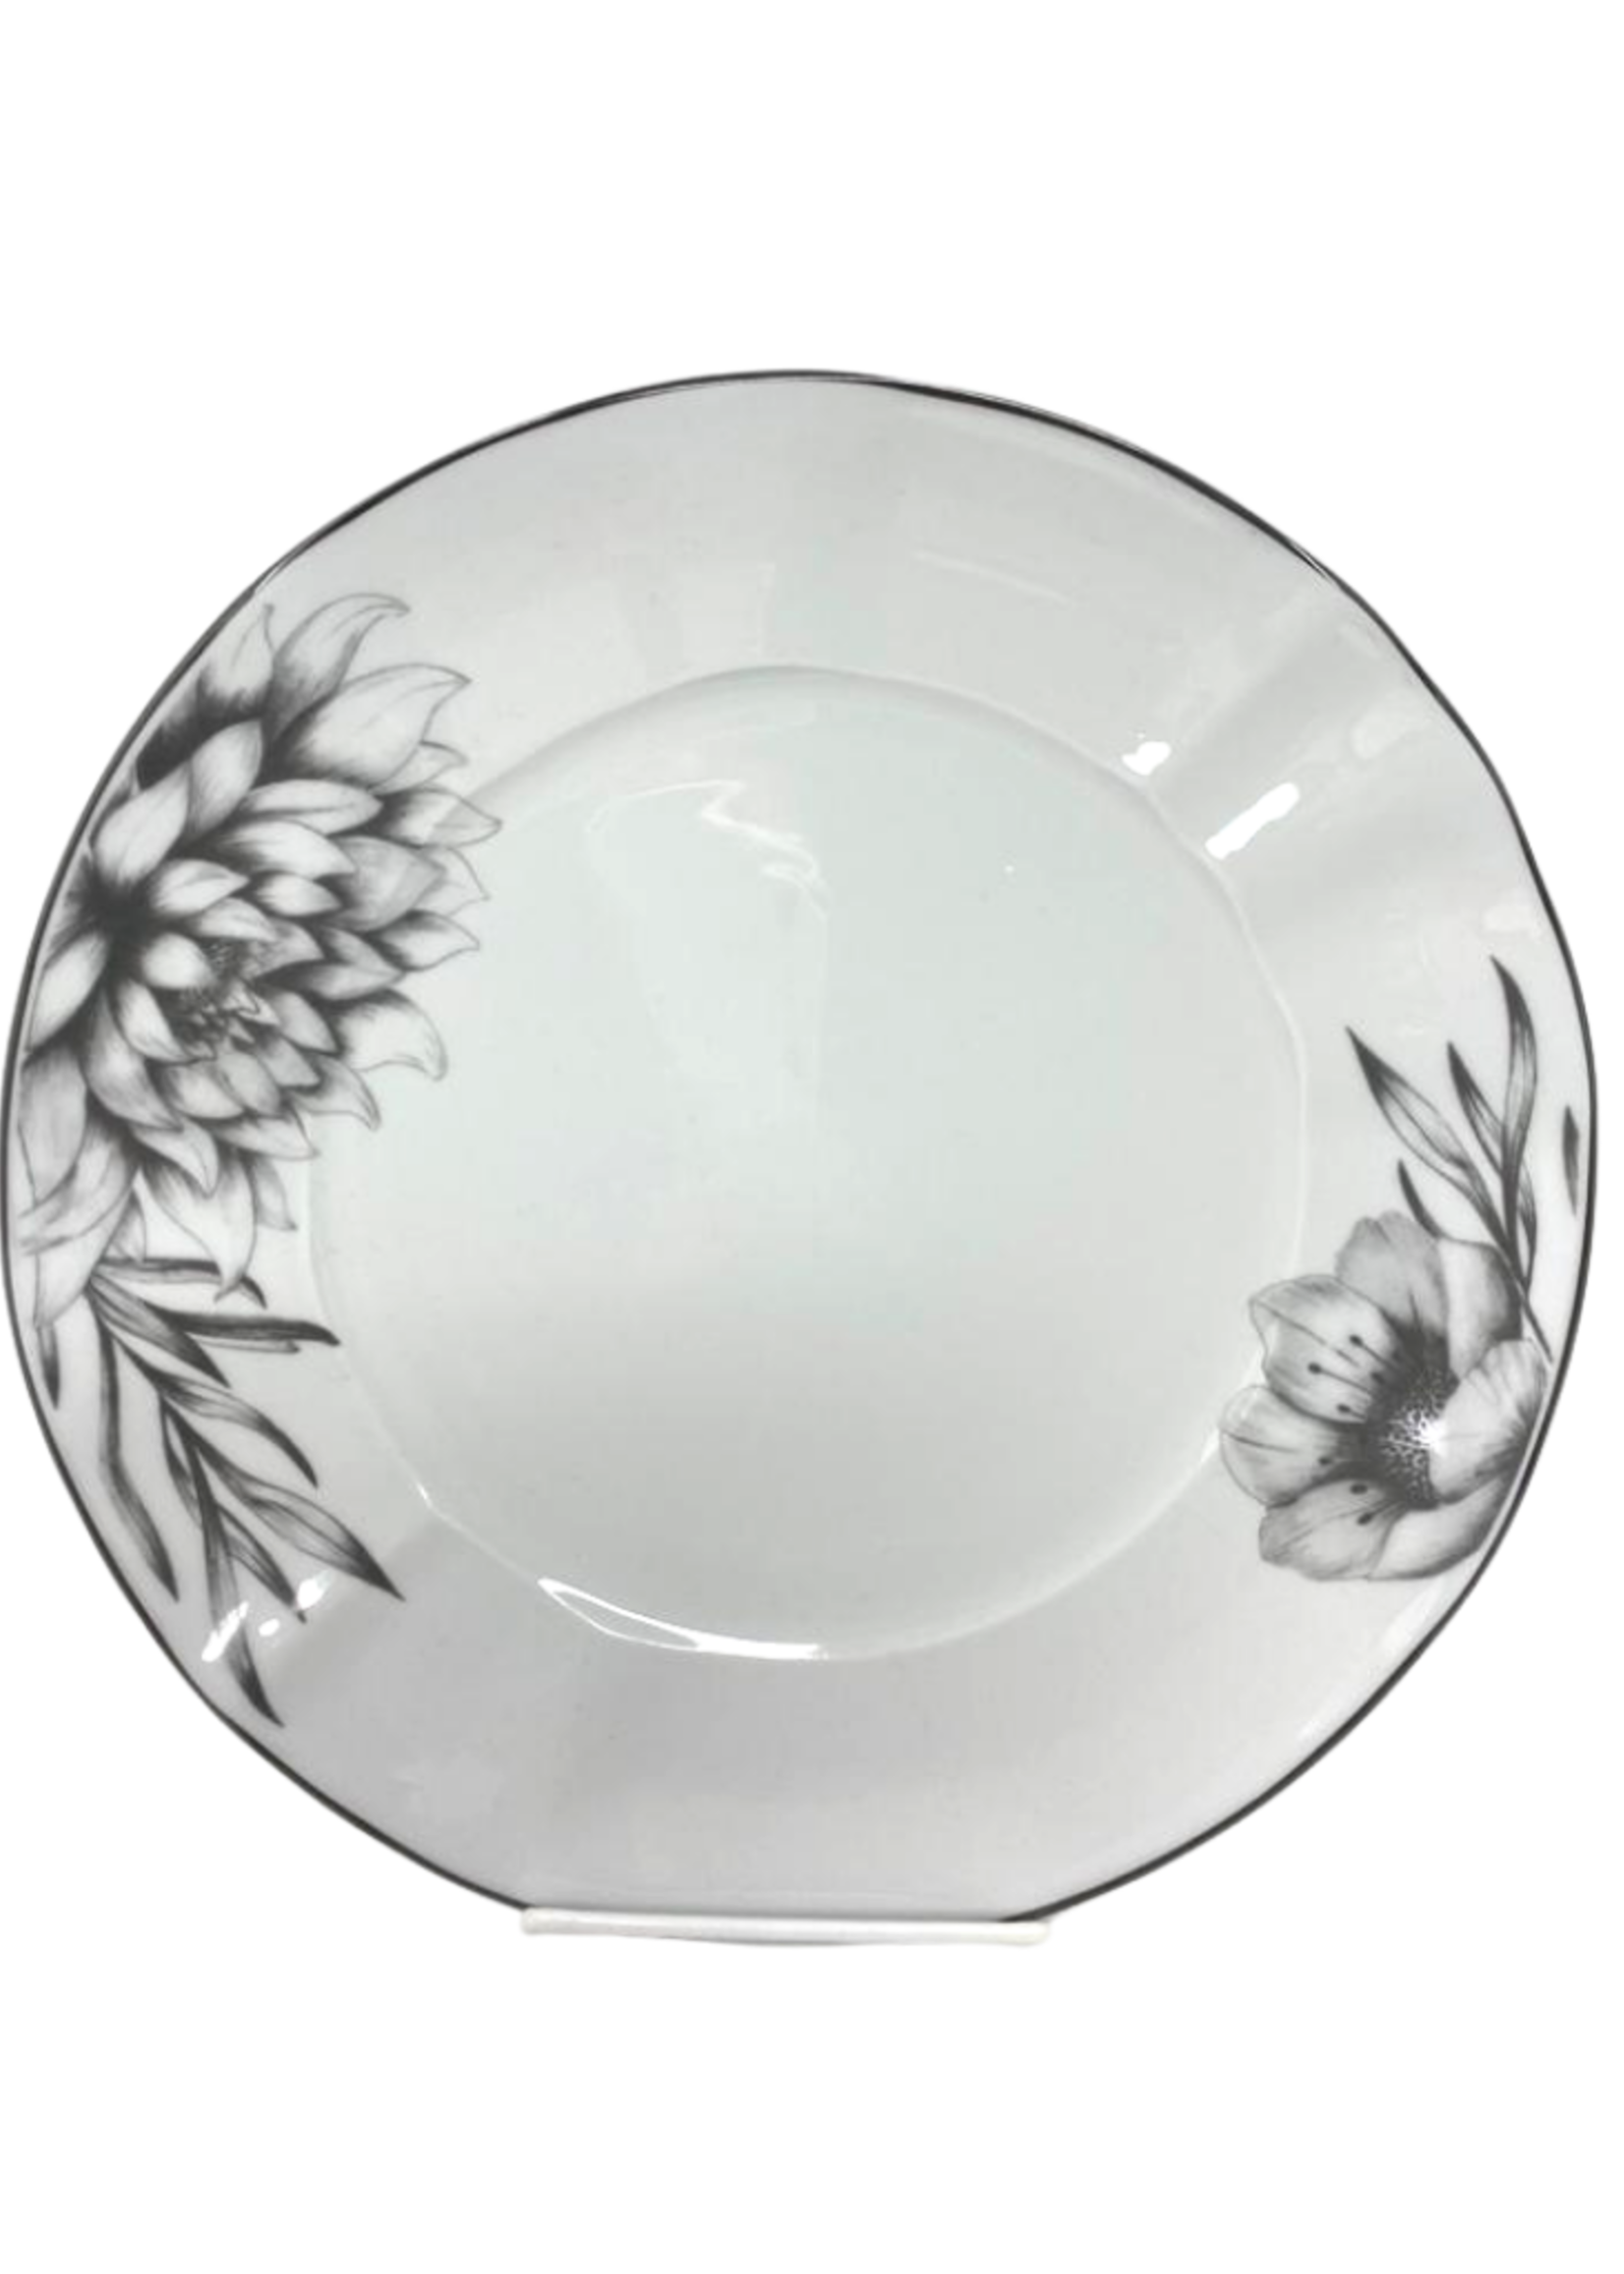 Dahlia 3 Piece Place Setting Service For One